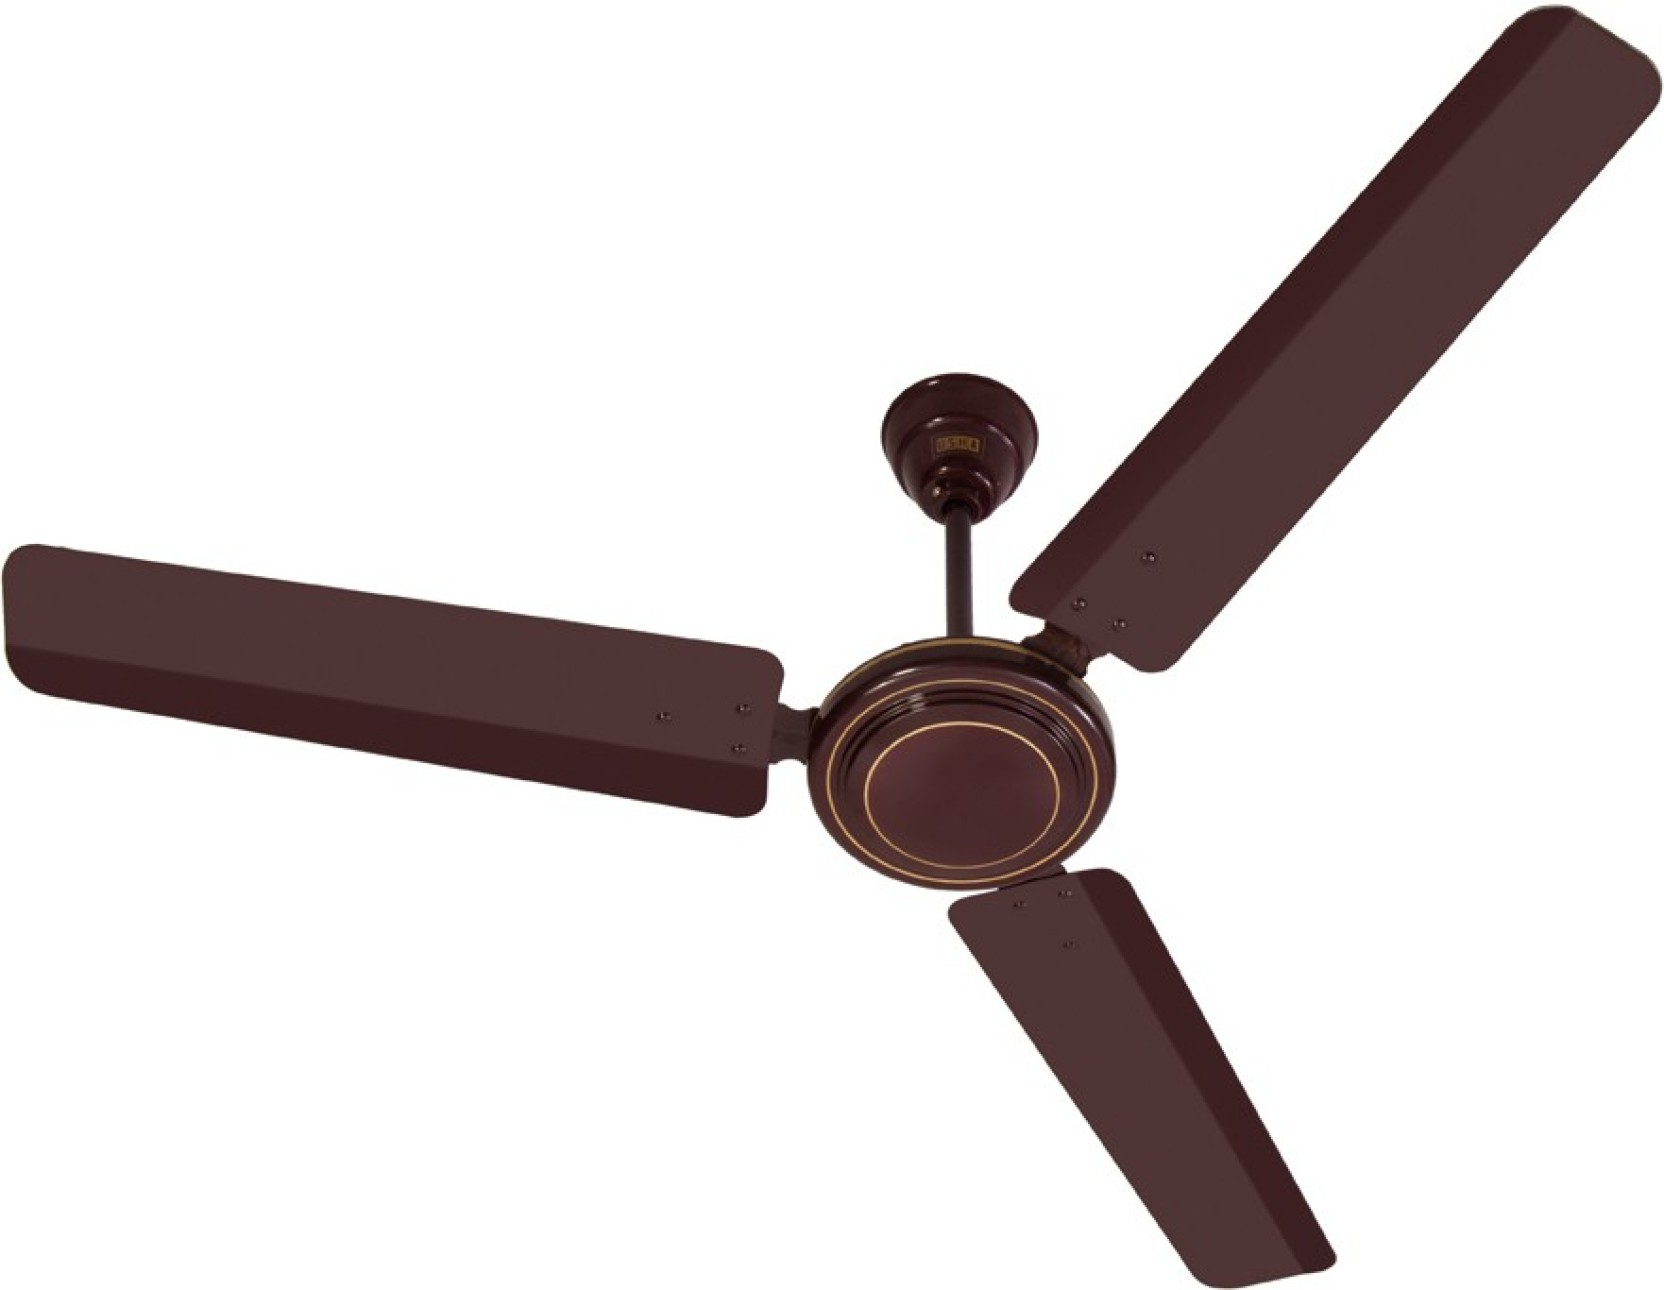 Usha Sonata Brown 1200 3 Blade Ceiling Fan Price In India Buy Google On Wires And Wiring A Without Light Add To Cart